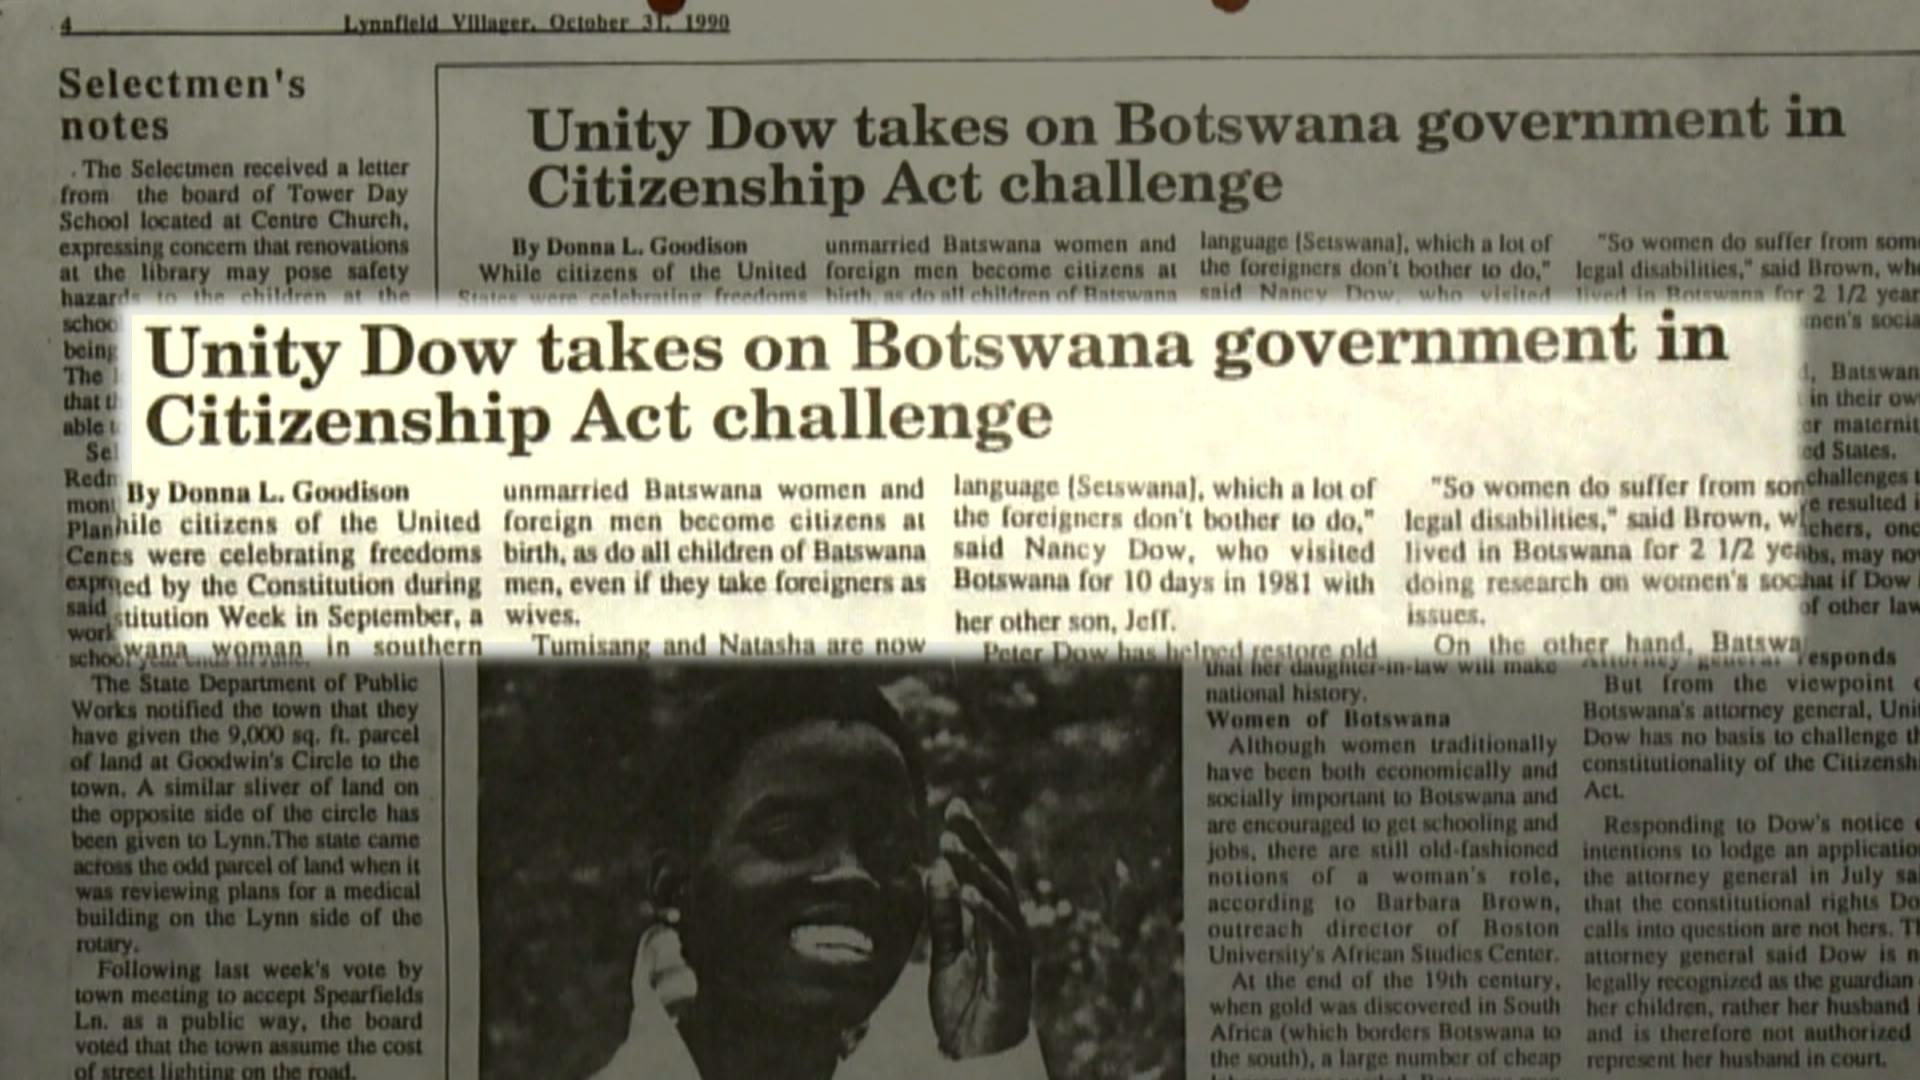 n 1992, Unity Dow challenged Botswana's government on the clause in their law that stated dual citizenship or Botswana nationality was only earned from the father.